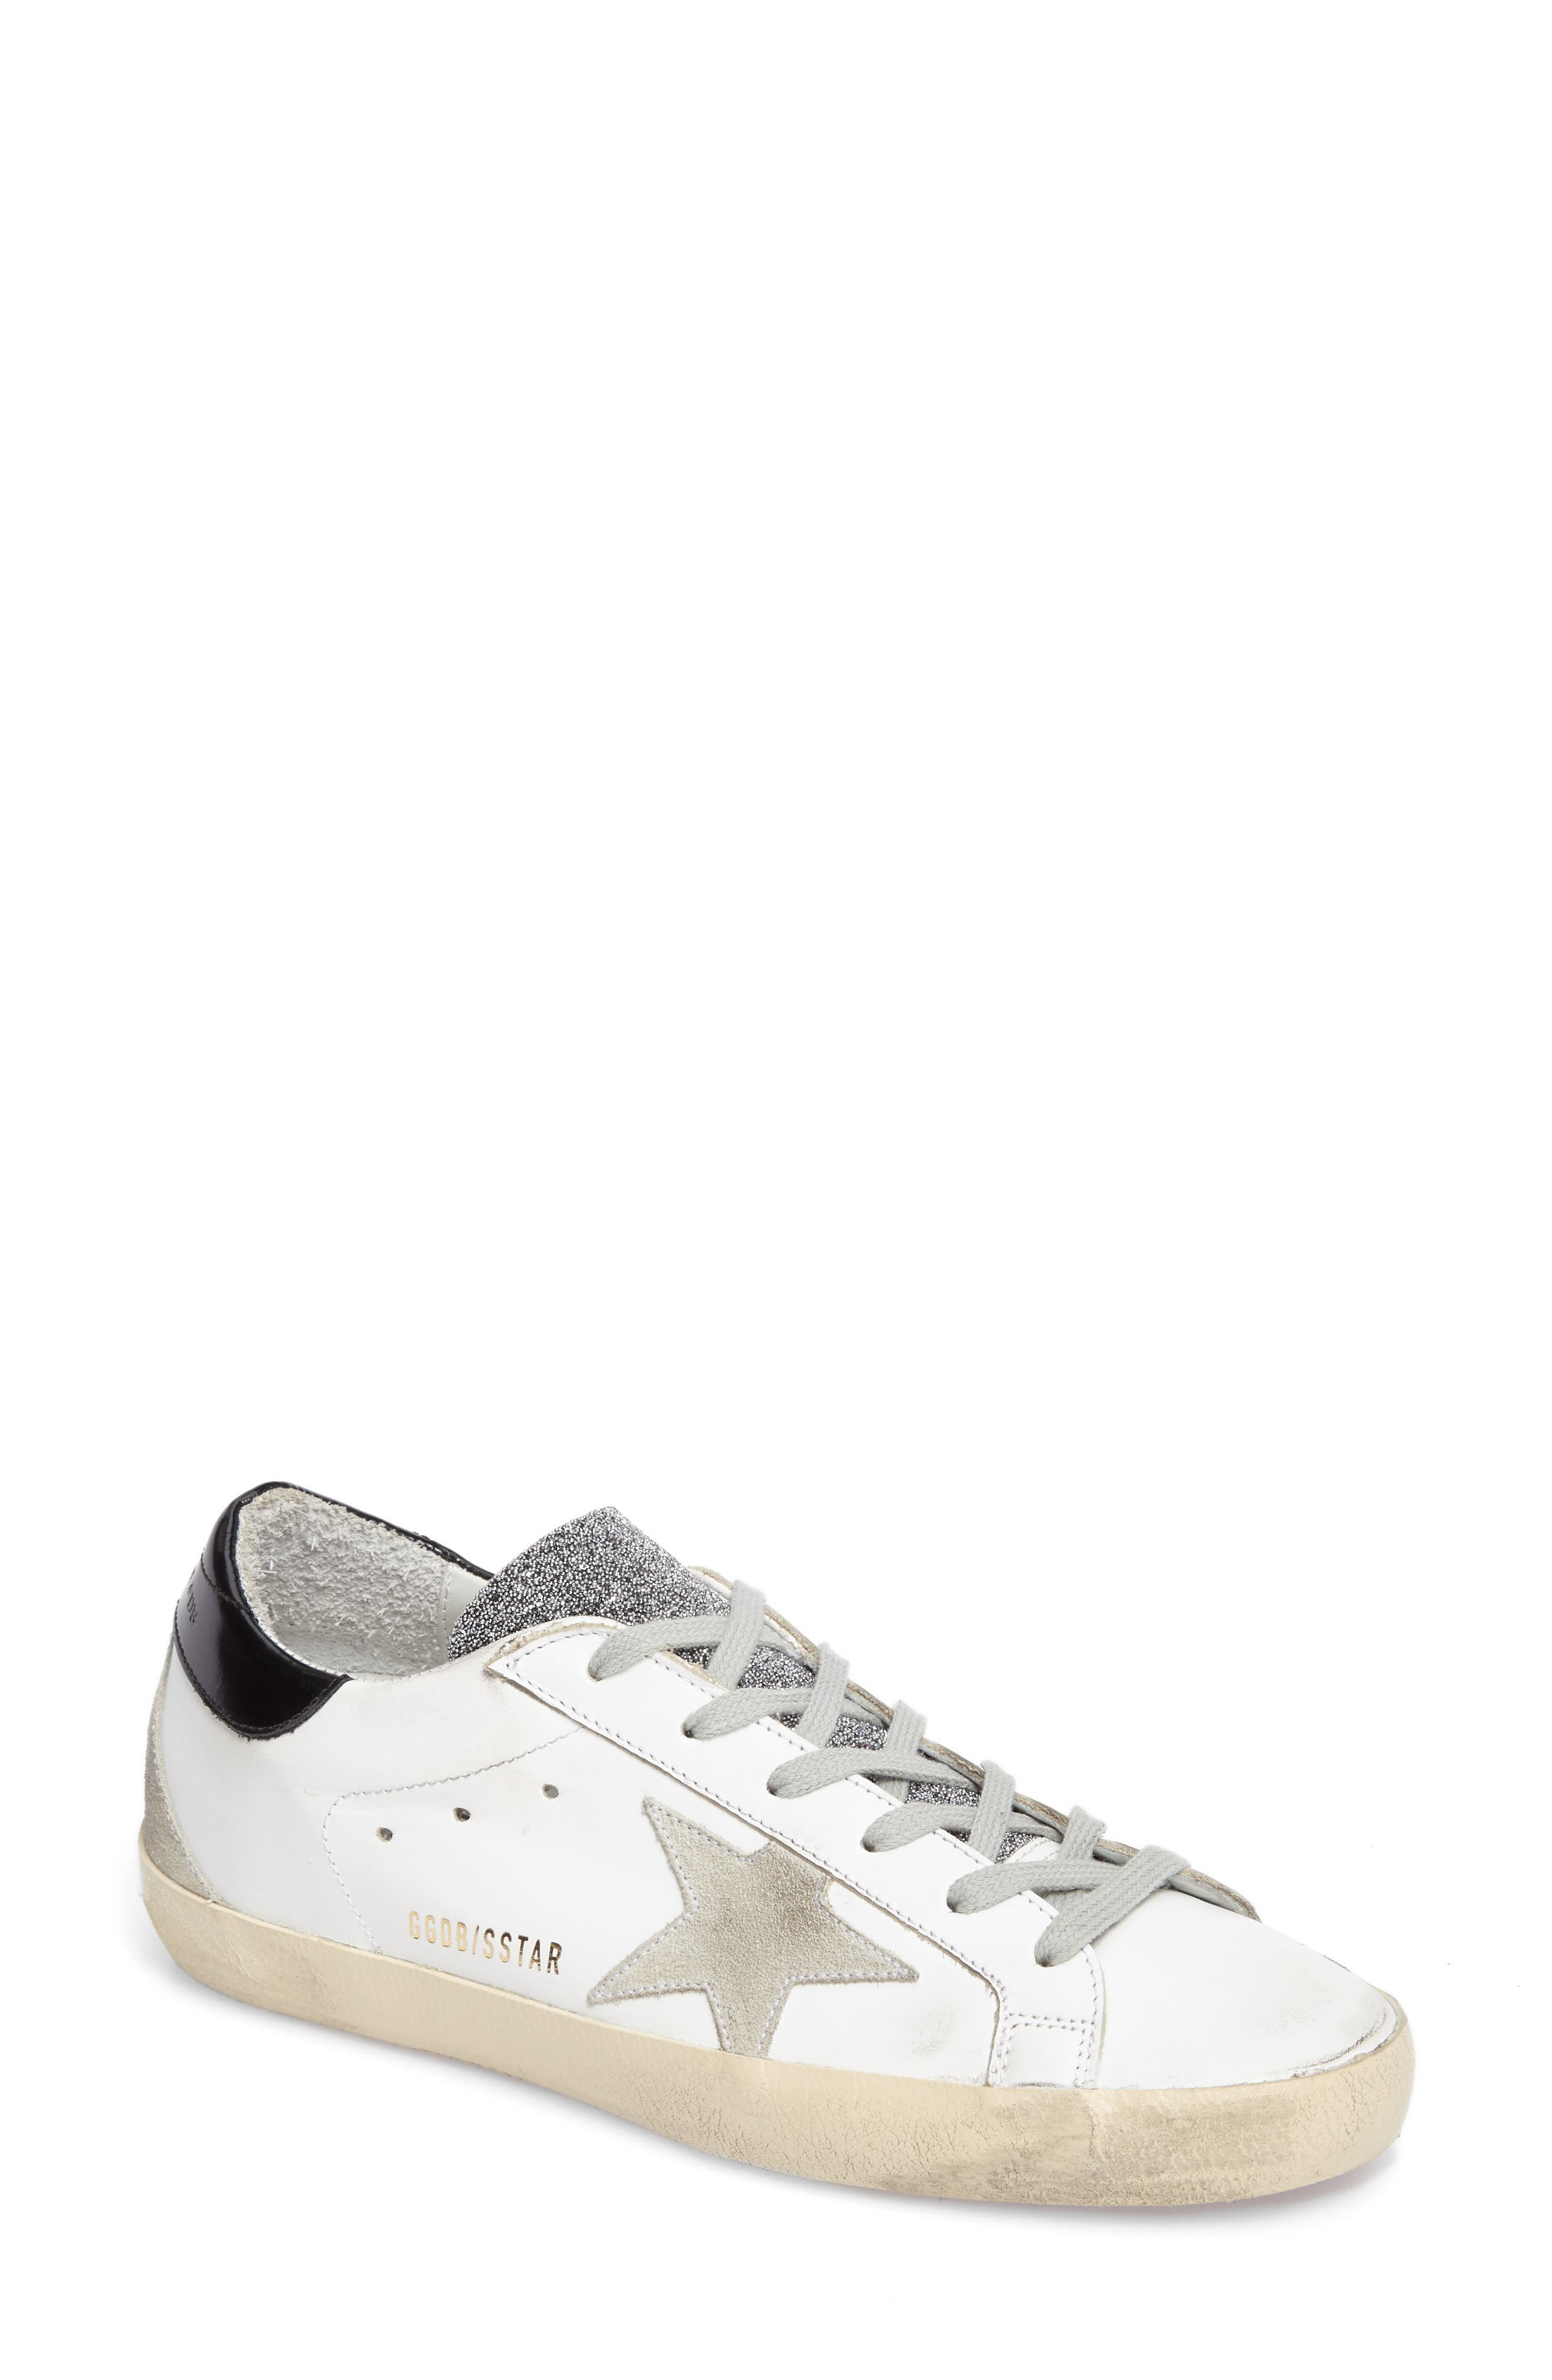 Superstar Low Top Sneaker,                         Main,                         color, White